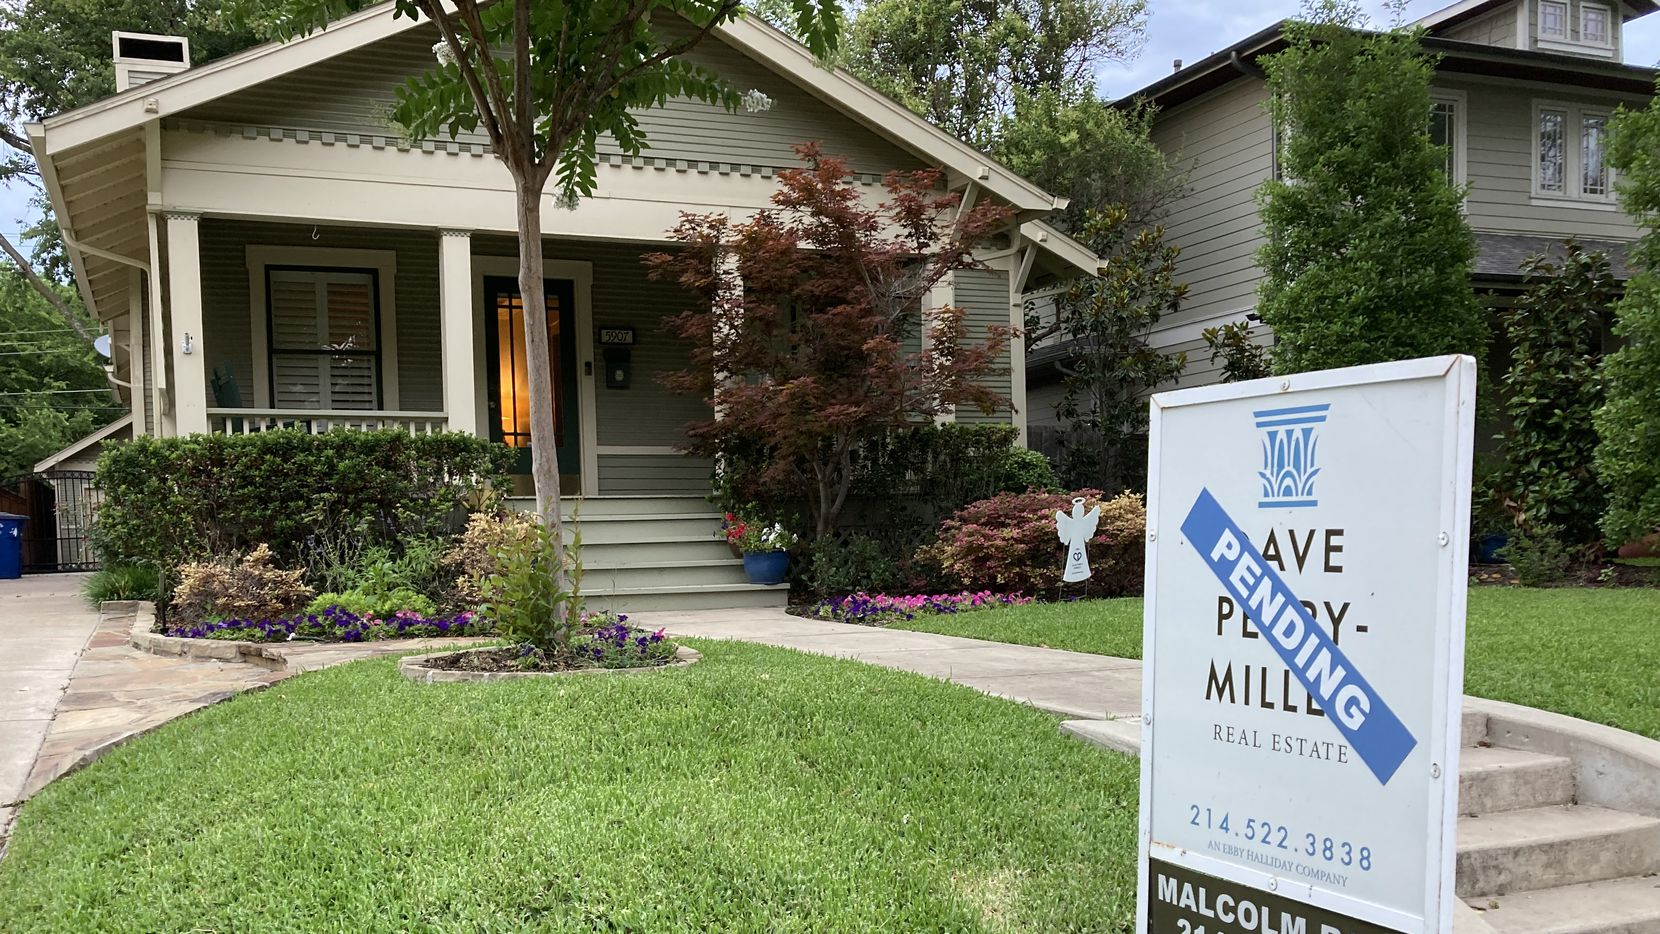 Dallas-Fort Worth is one of the most overvalued home markets in the country, according to Fitch Ratings.